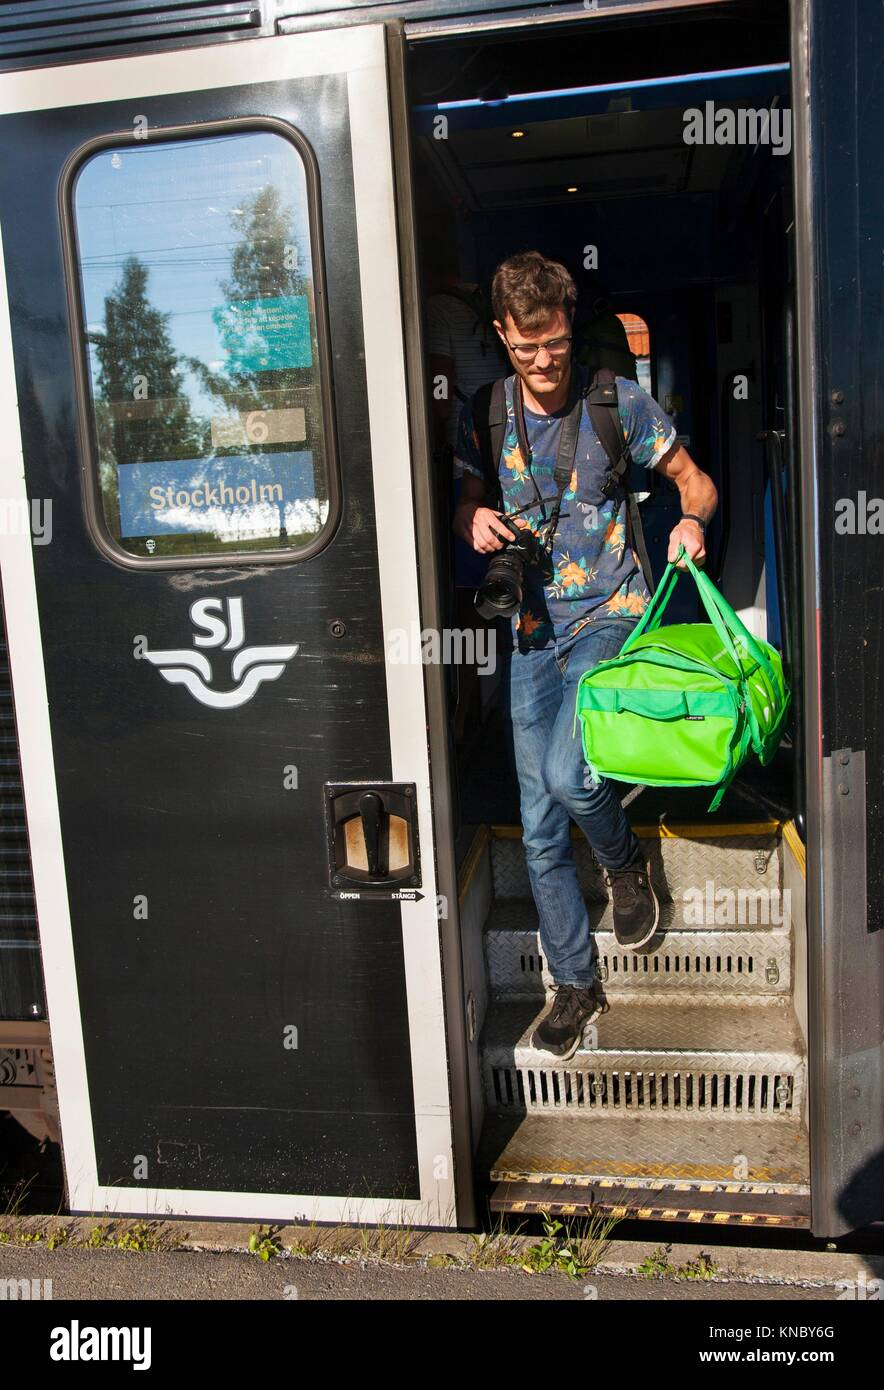 Man stepping off train Northern Sweden. - Stock Image